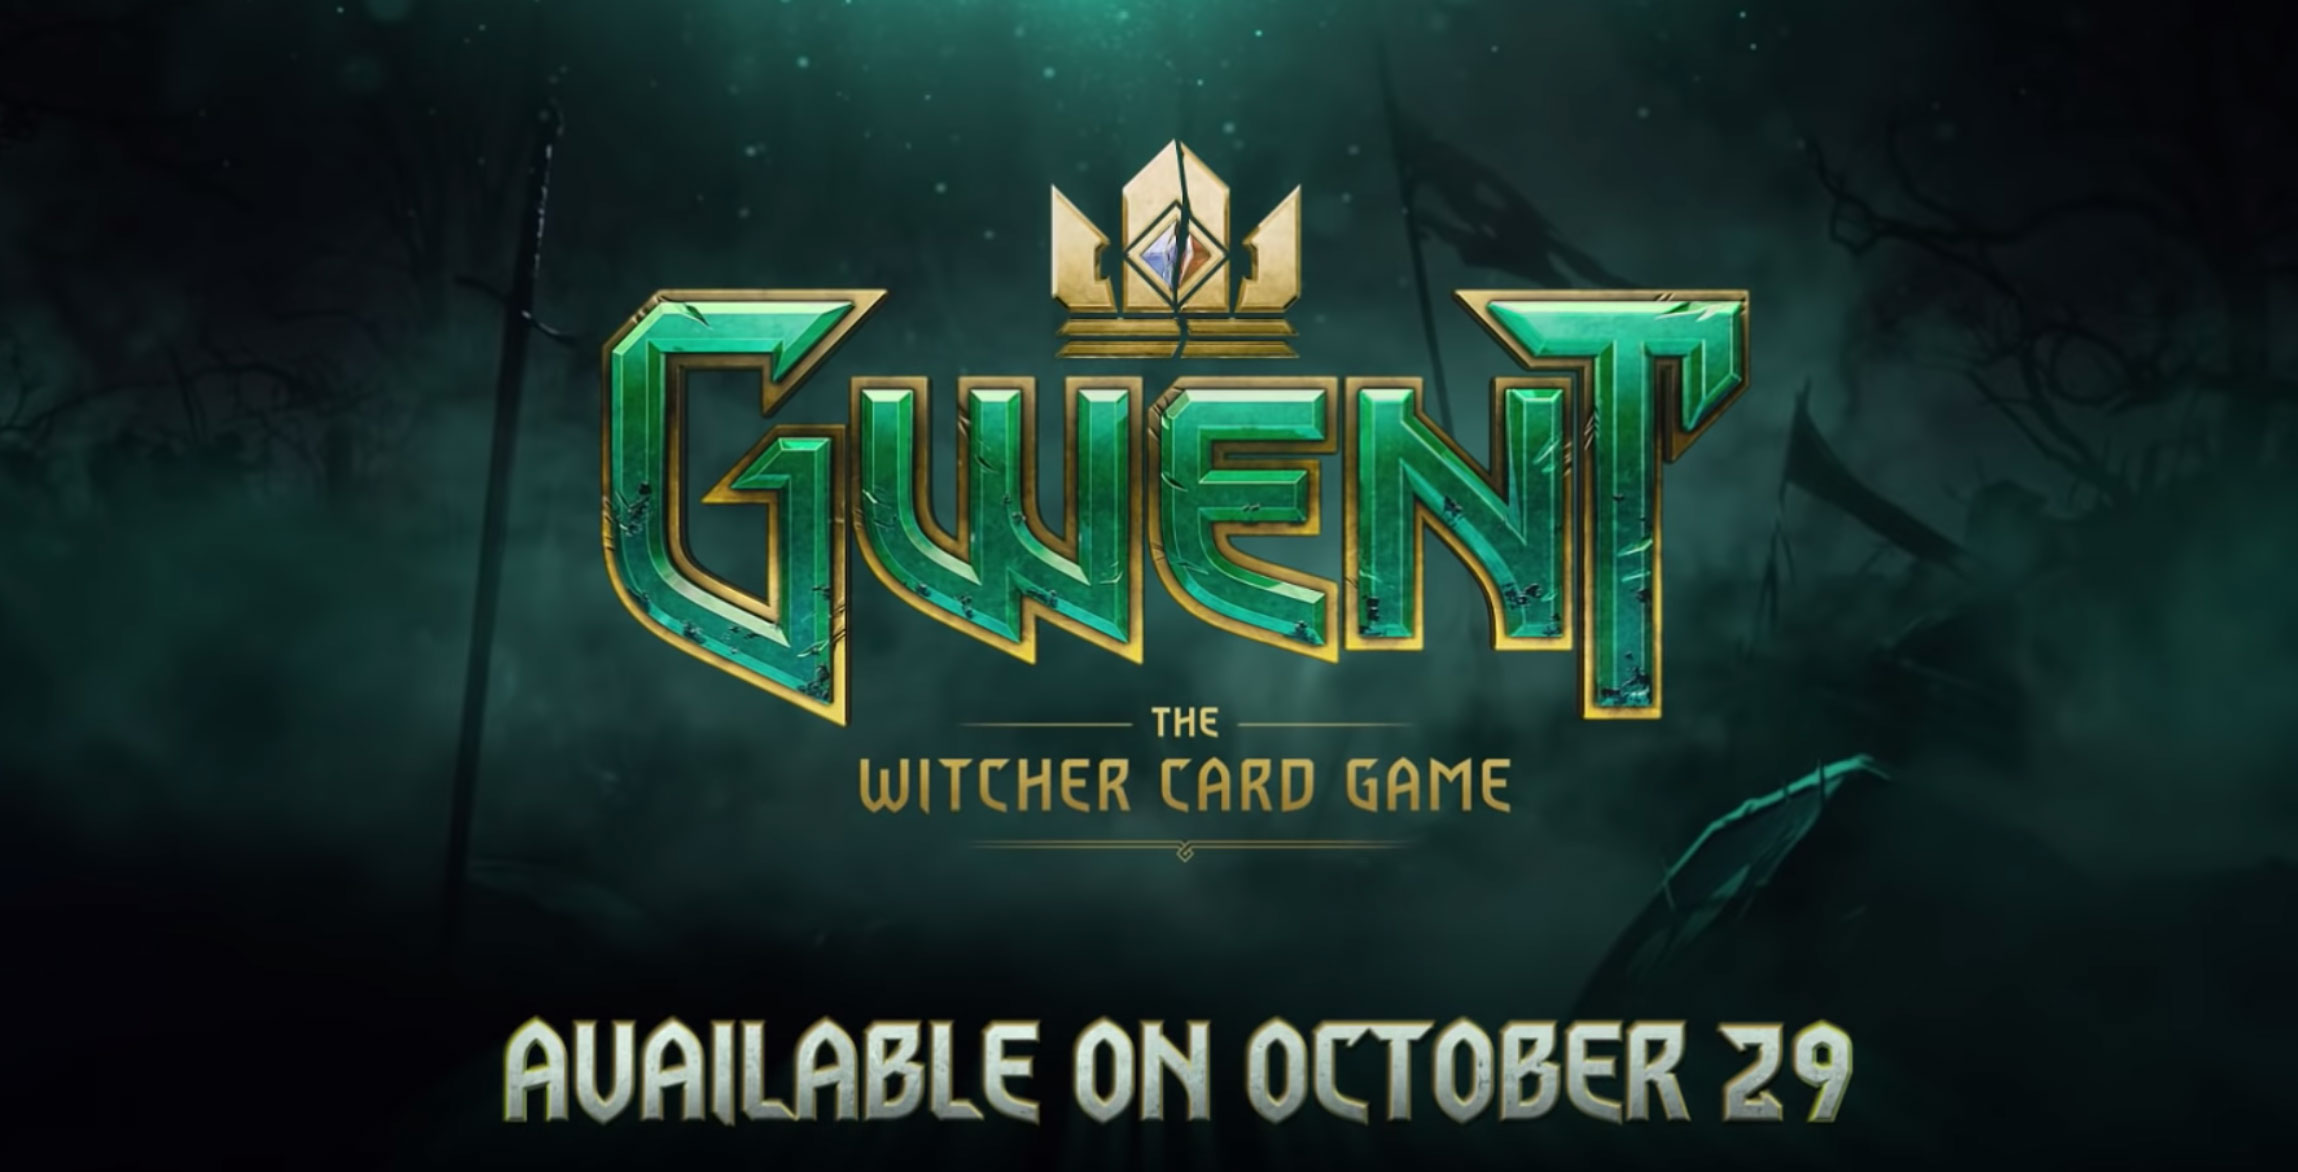 Gwent: The Witcher Card Game is coming to iOS on October 29th